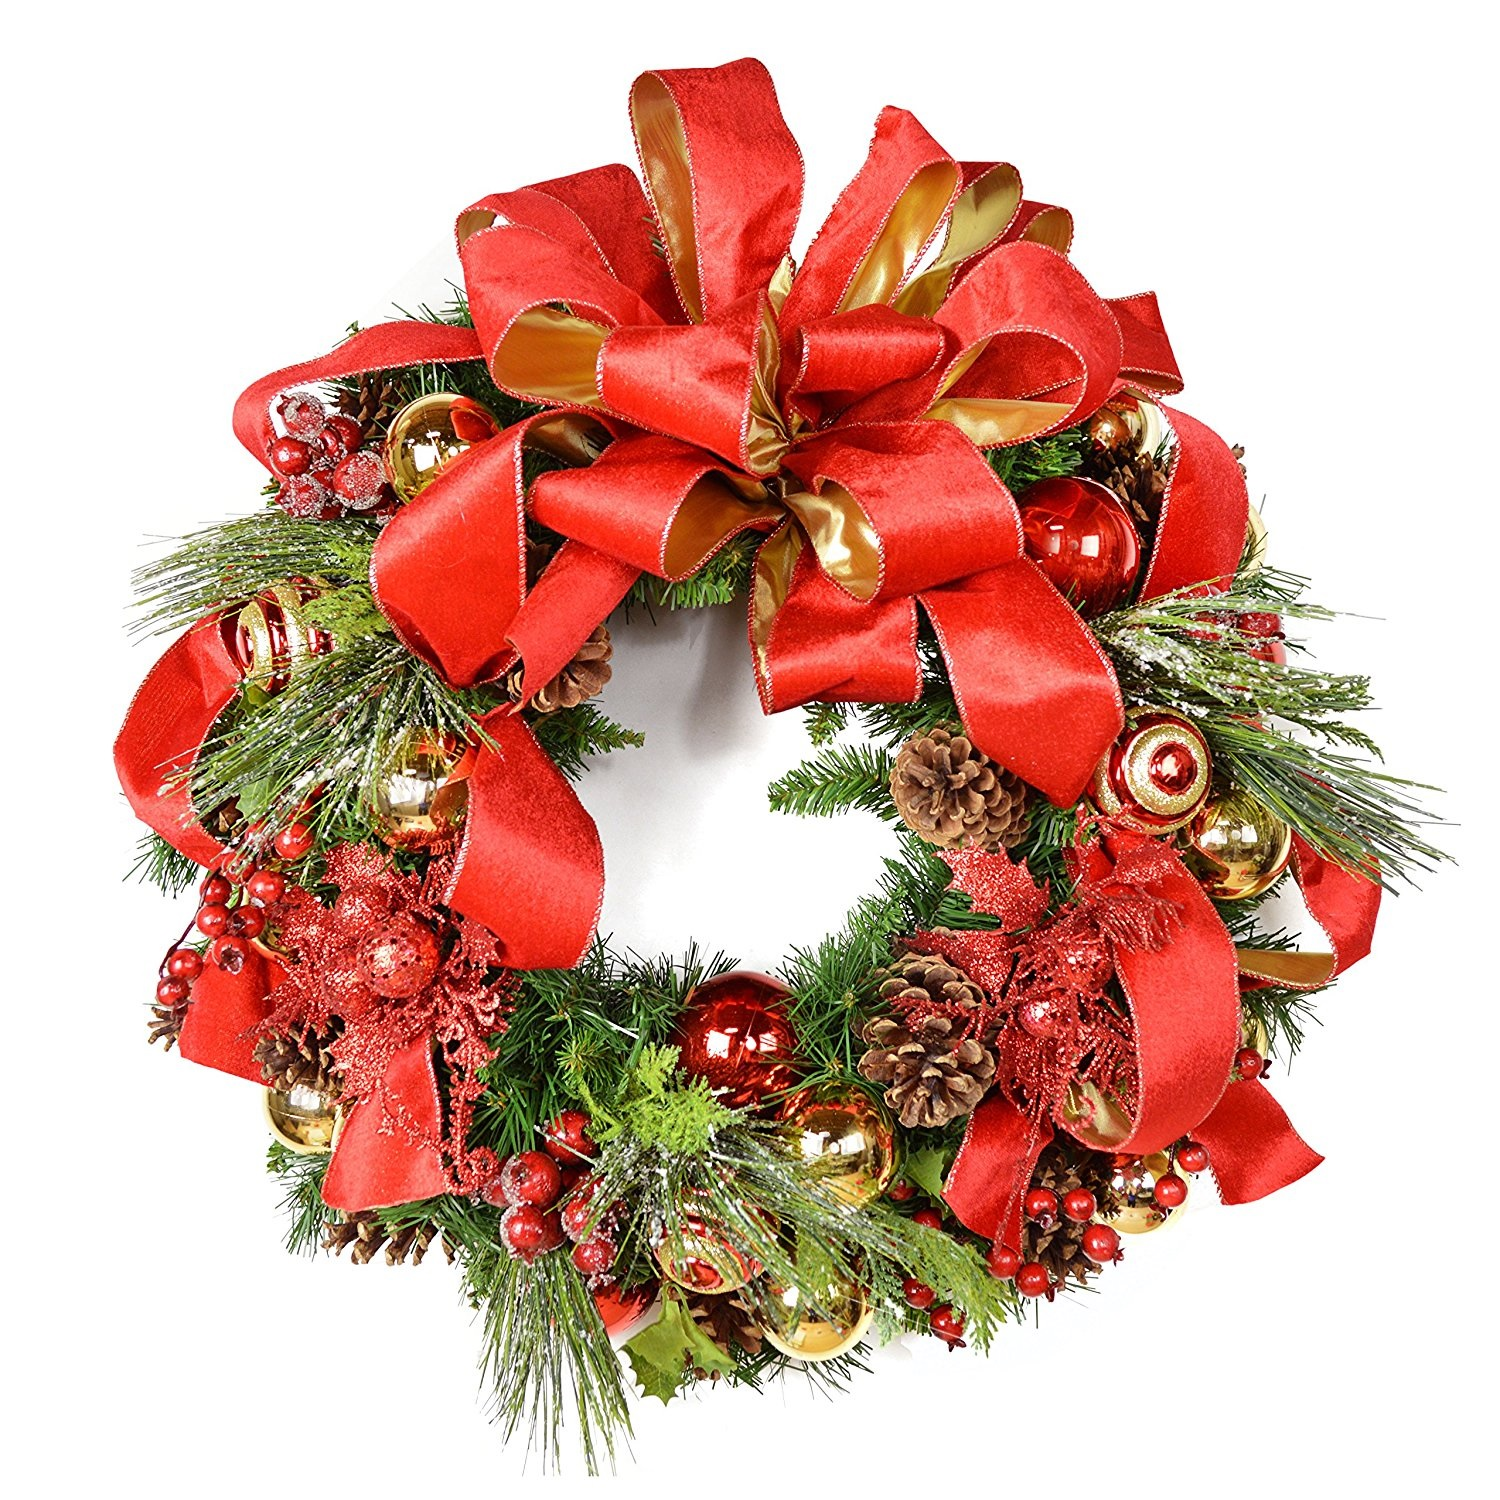 Front door christmas wreaths - Decorative Christmas Wreaths For The Front Door